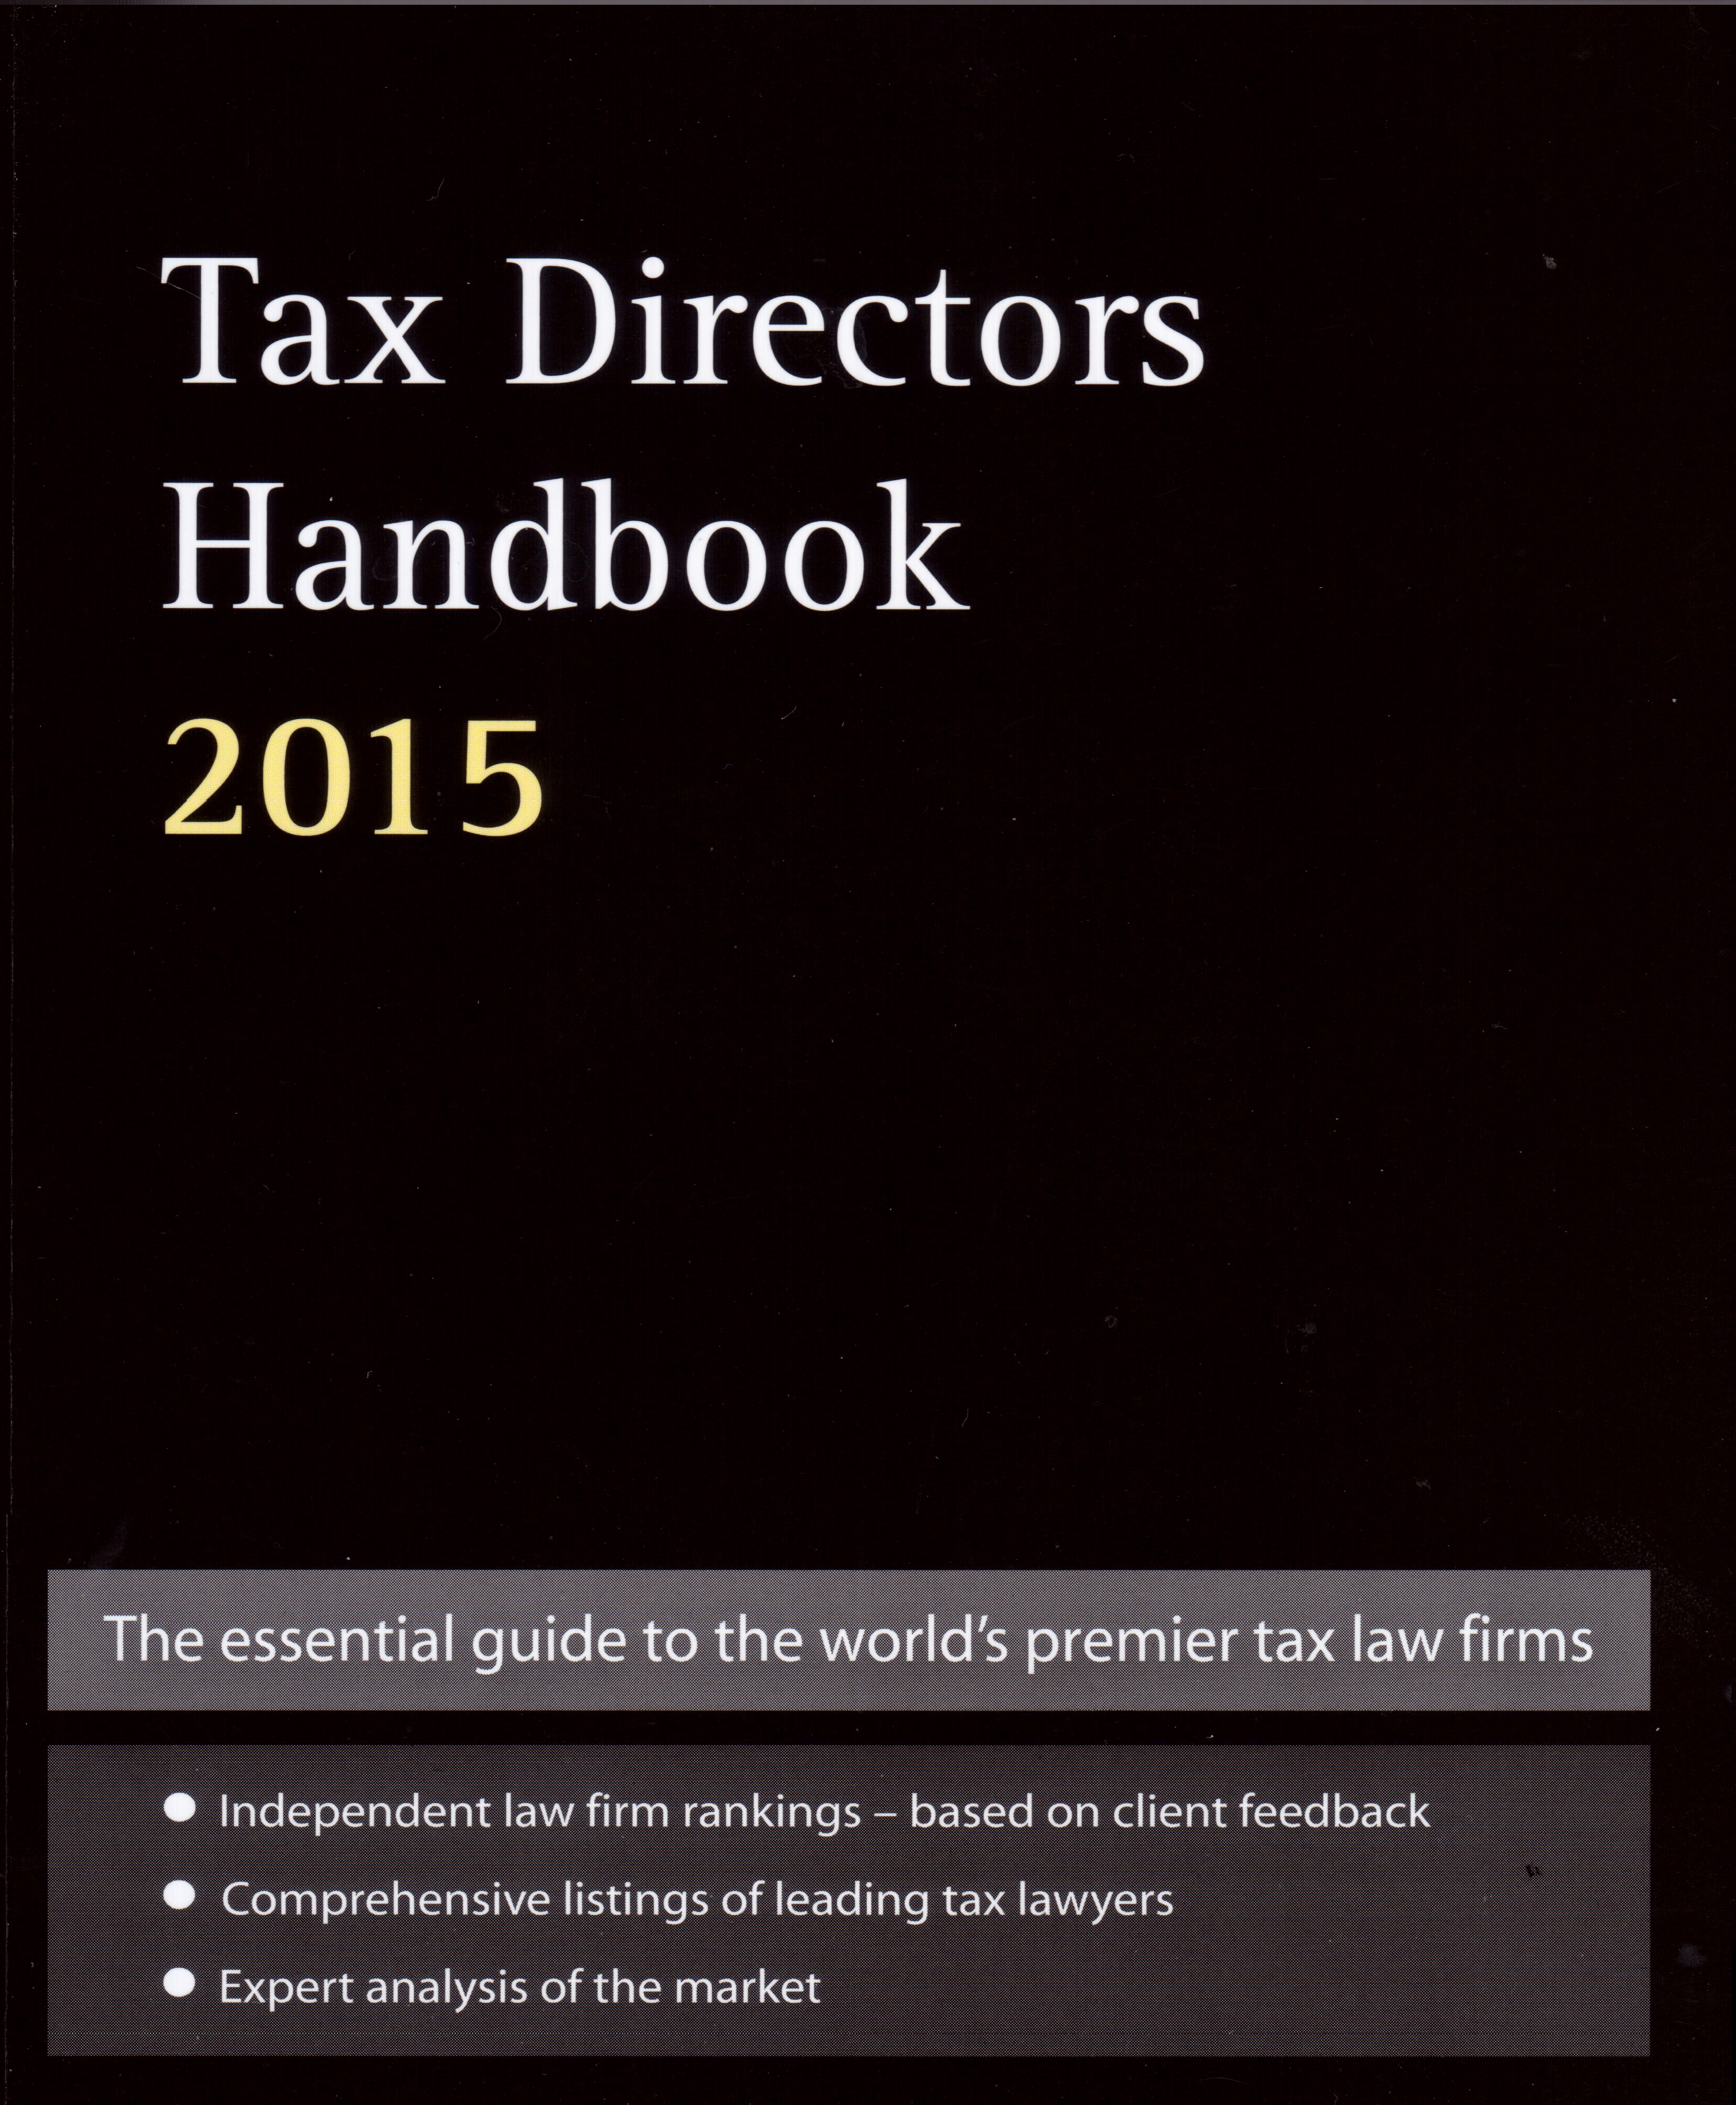 tax directors handbook 2015, leading tax law firm in Latvia, Estonia, Lithuania